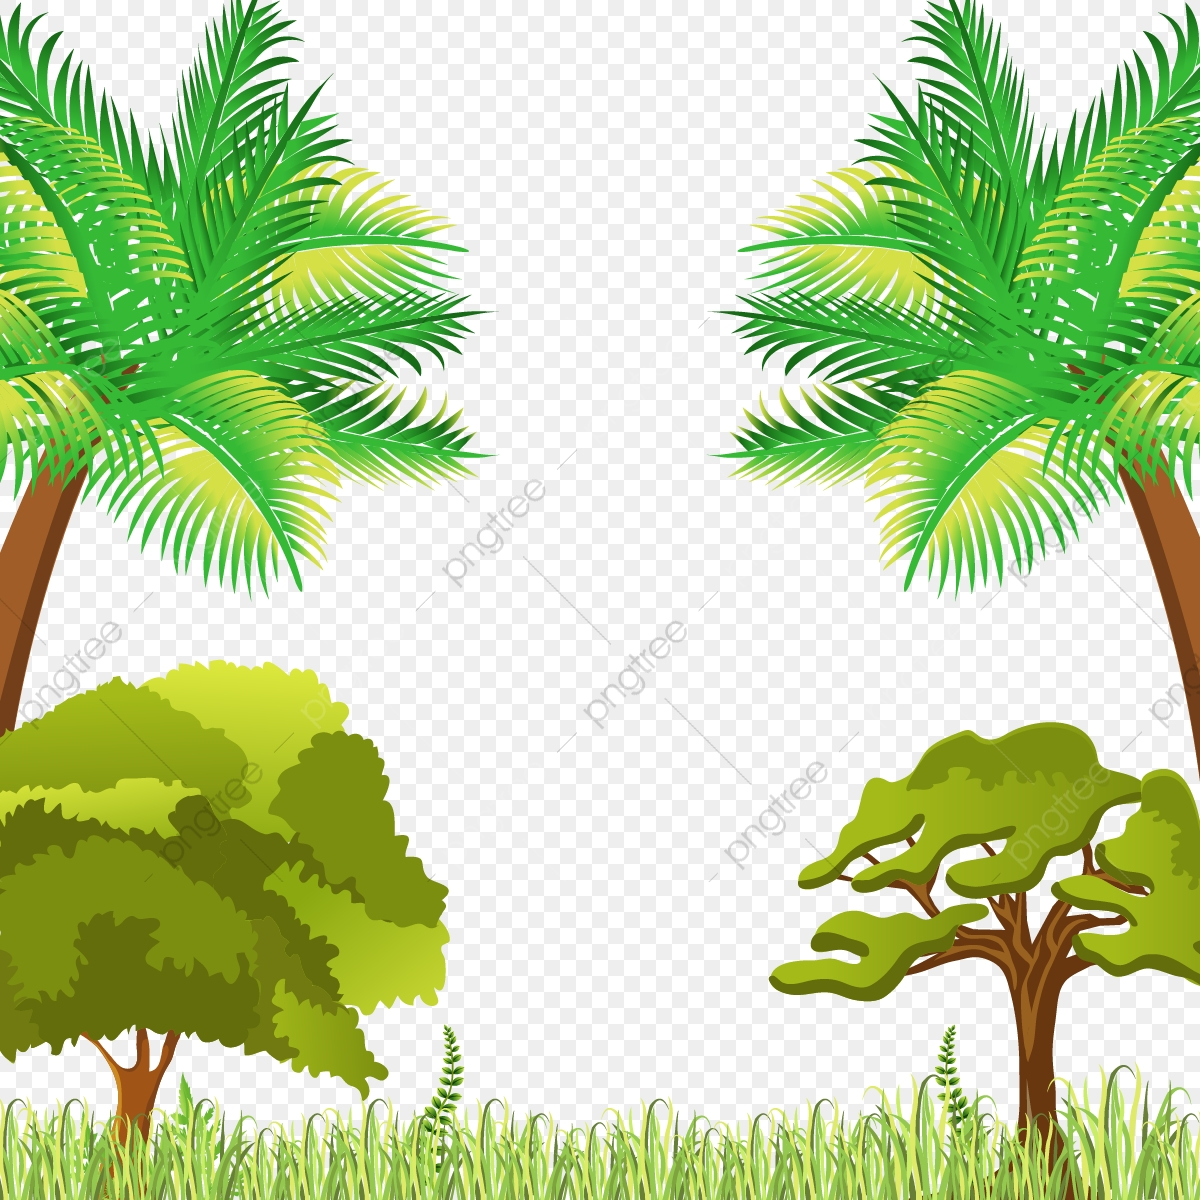 Beautiful Natural Scene With Trees And Grass Vector.